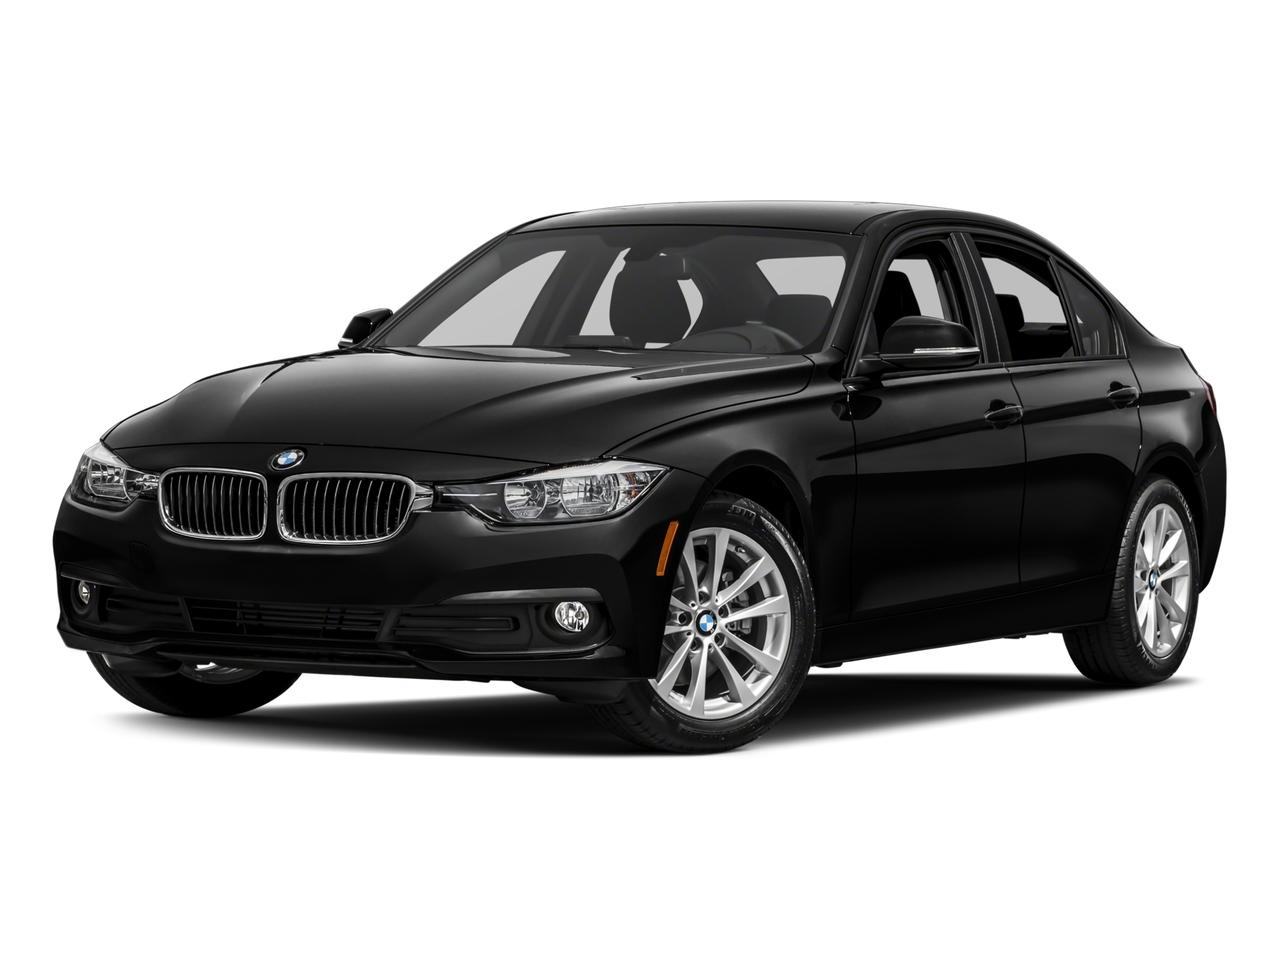 2017 BMW 320i Vehicle Photo in San Antonio, TX 78257